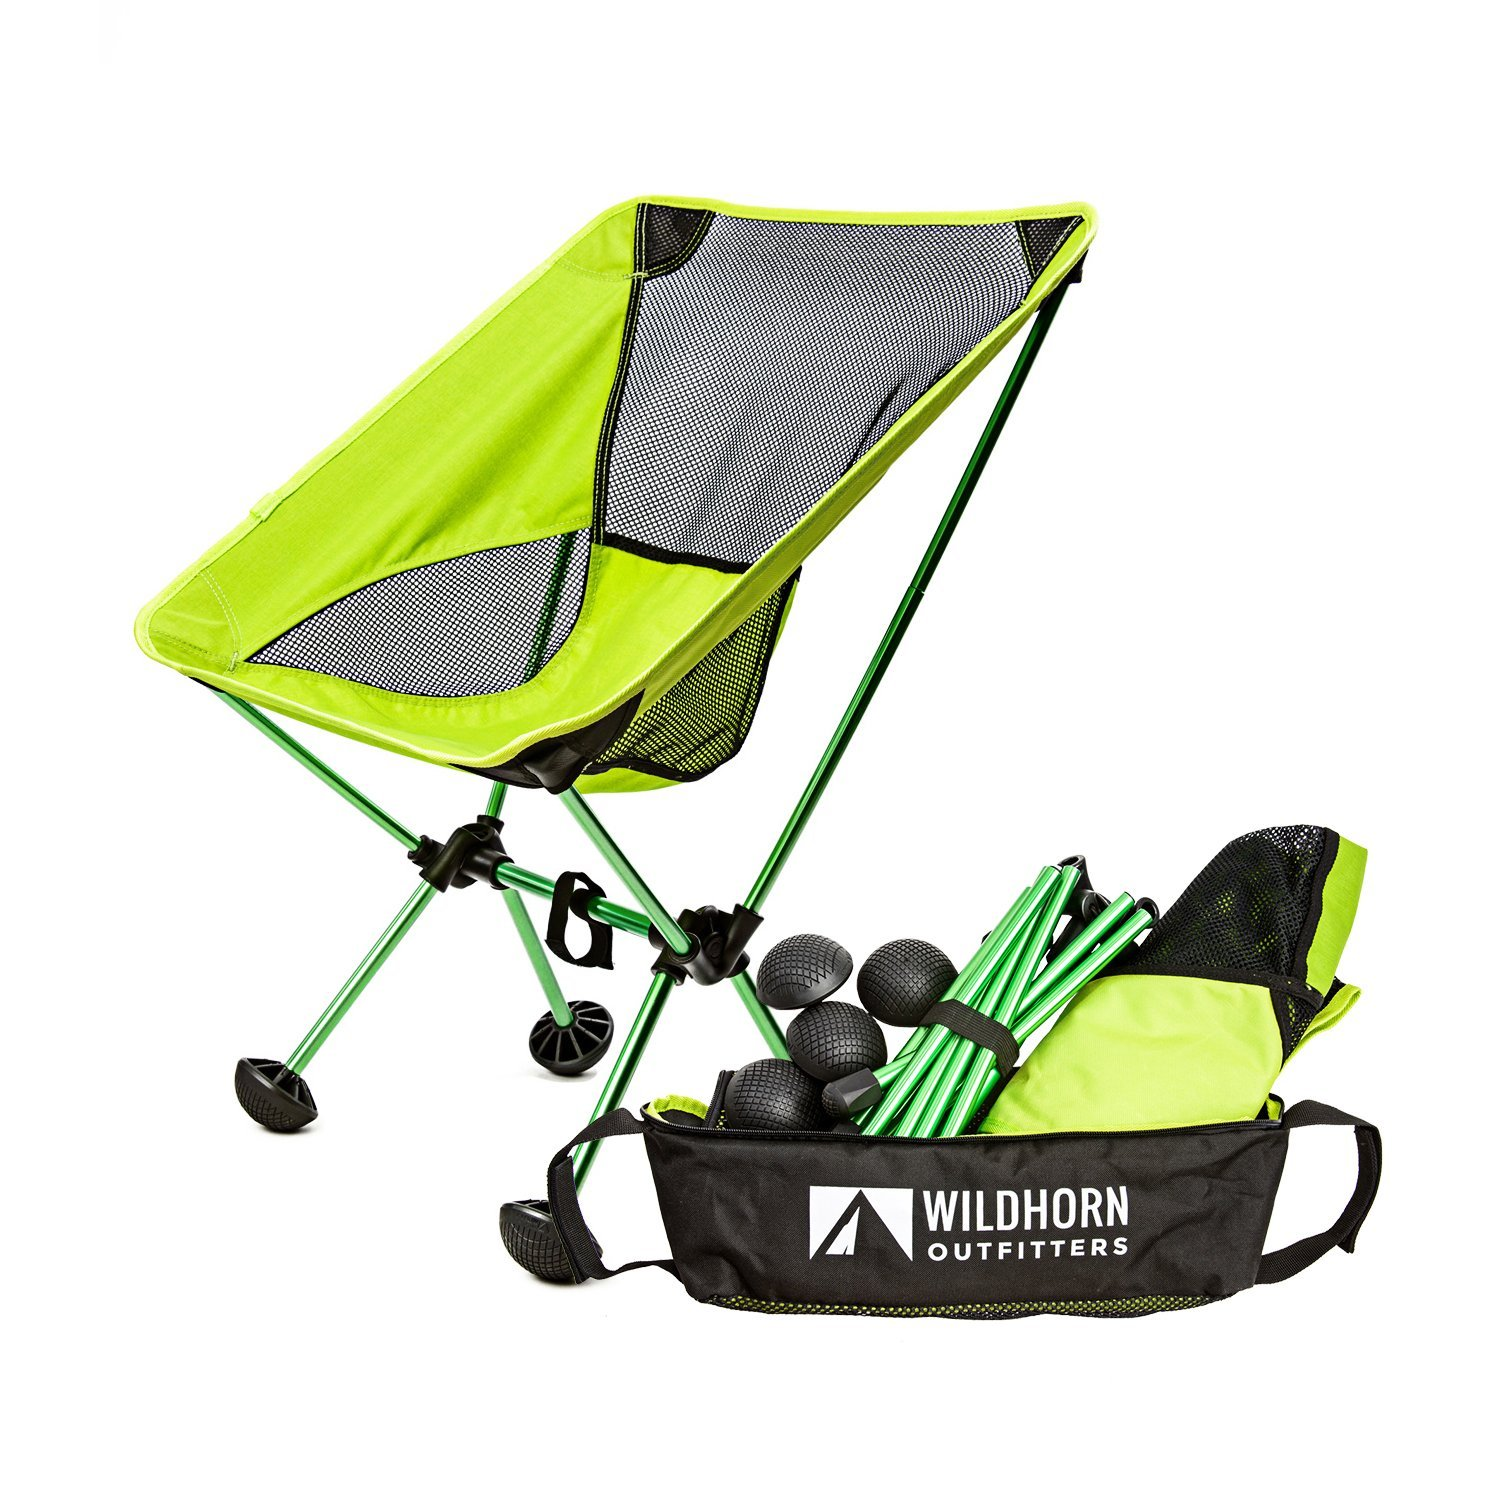 Wildhorn Outfitters Terralite Portable Camp : Beach Chair